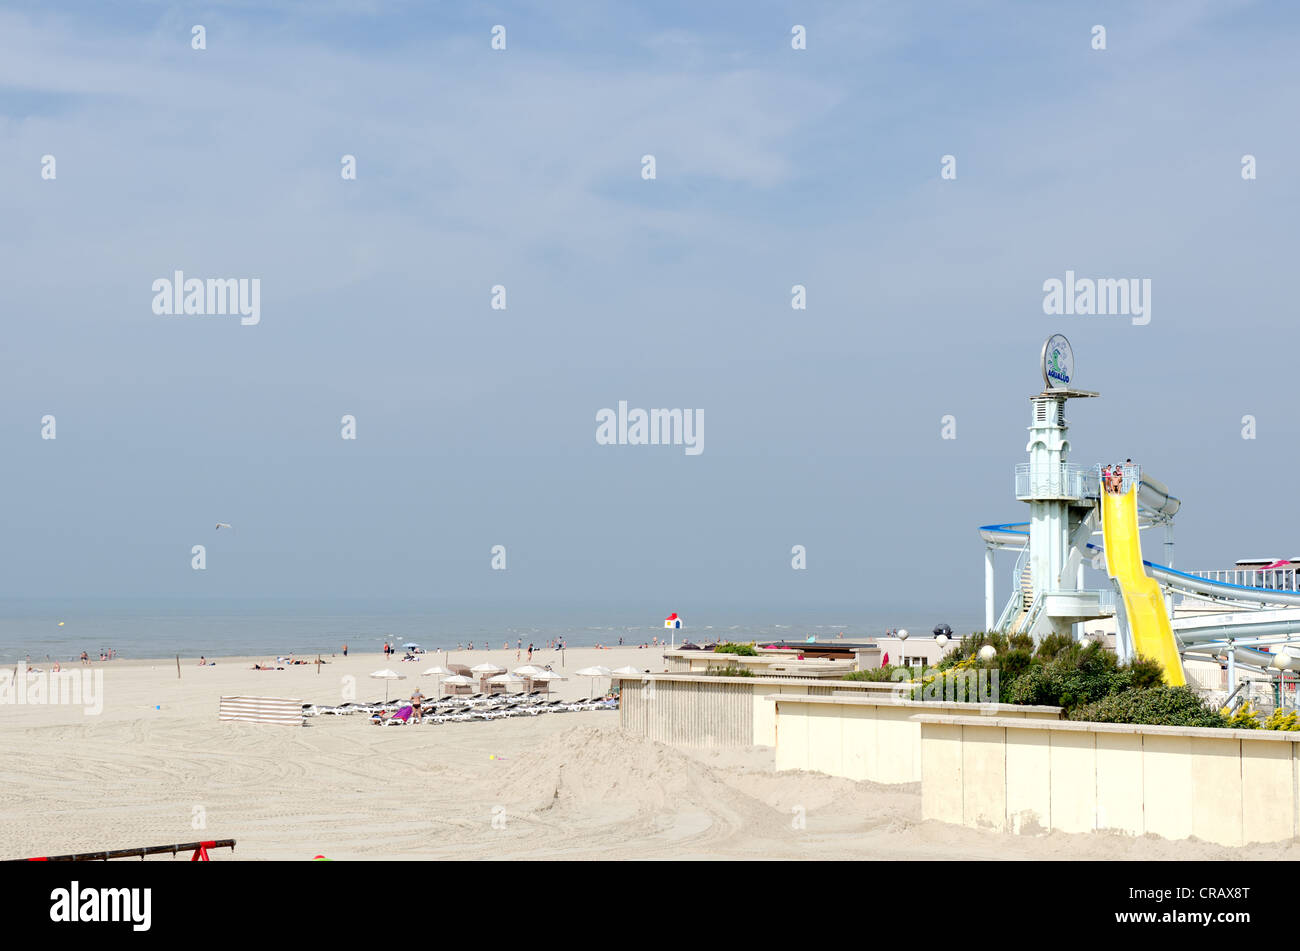 The wide sandy beach and water park at Le Touquet in Picardy in northern France. Stock Photo